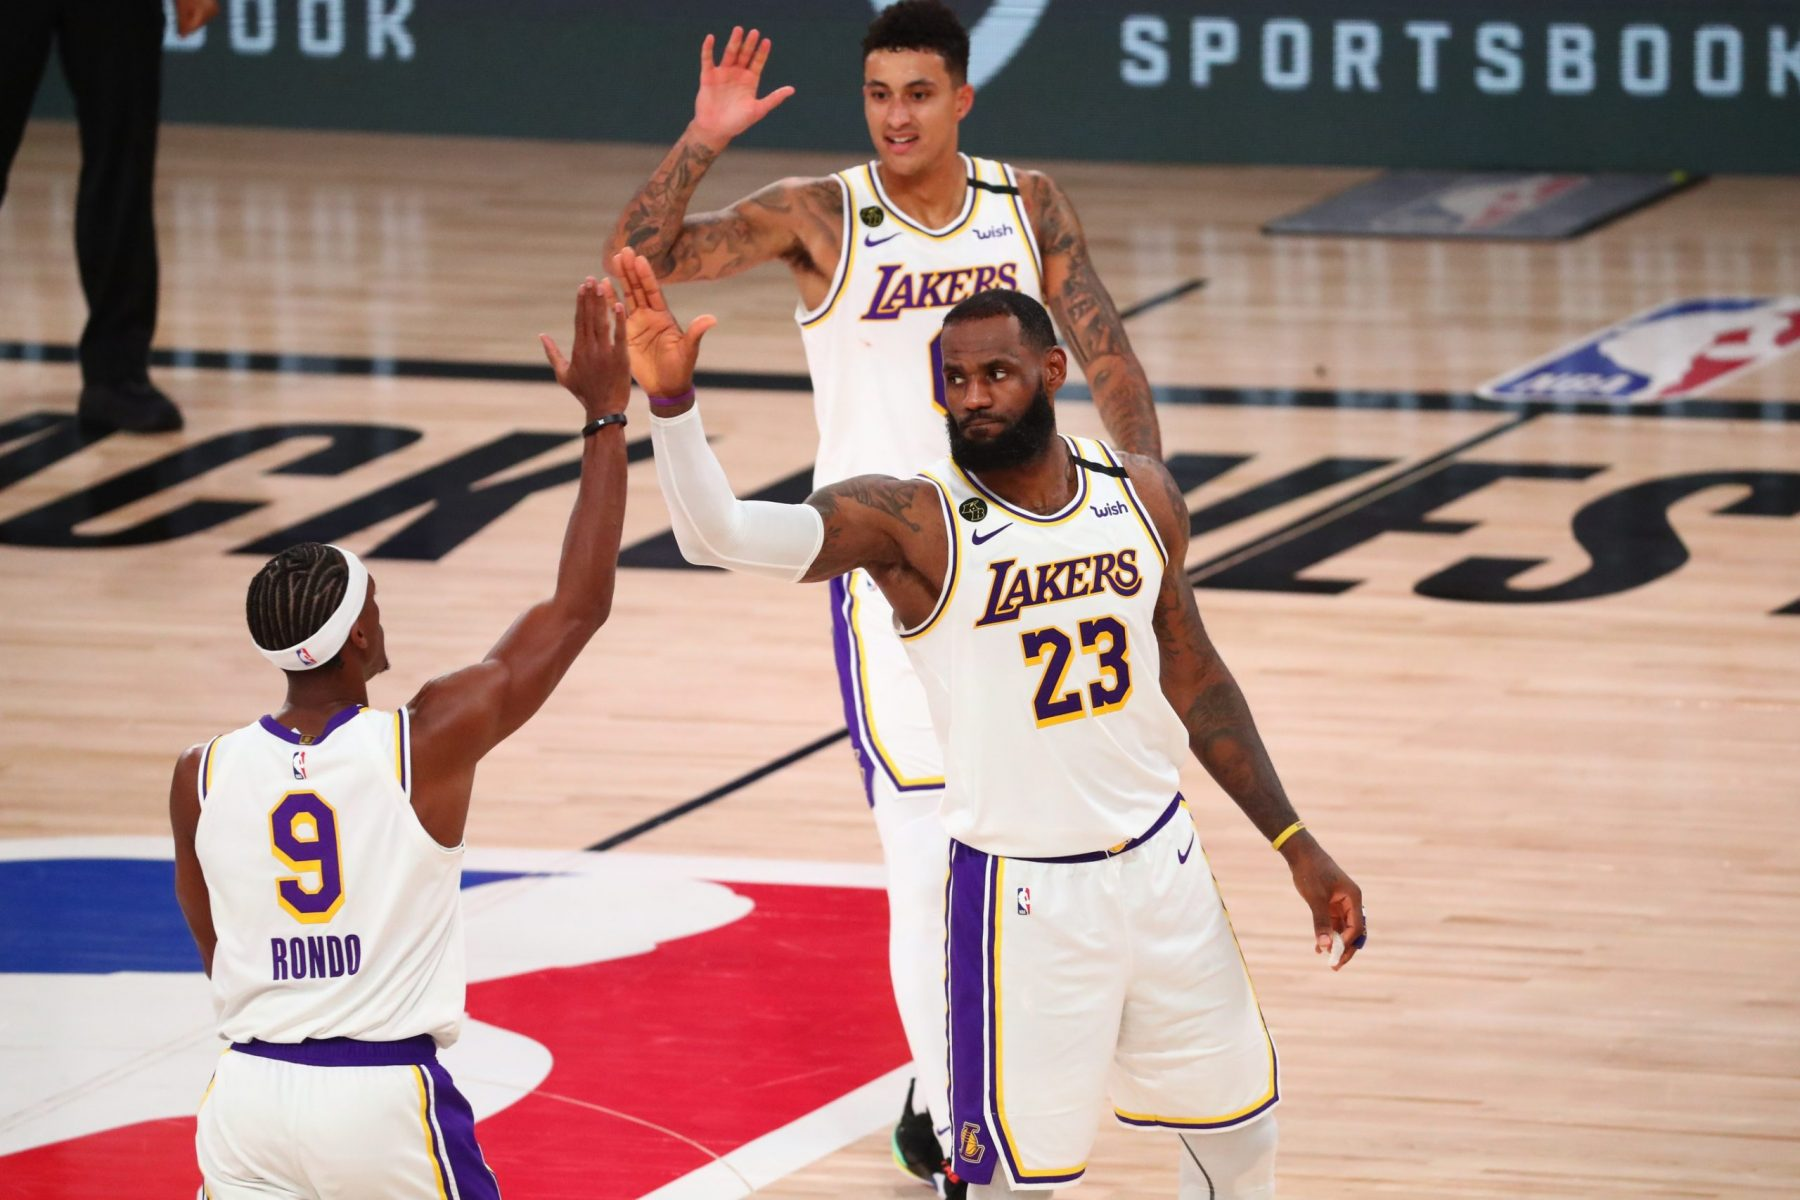 LeBron James, Rajon Rondo and Kyle Kuzma